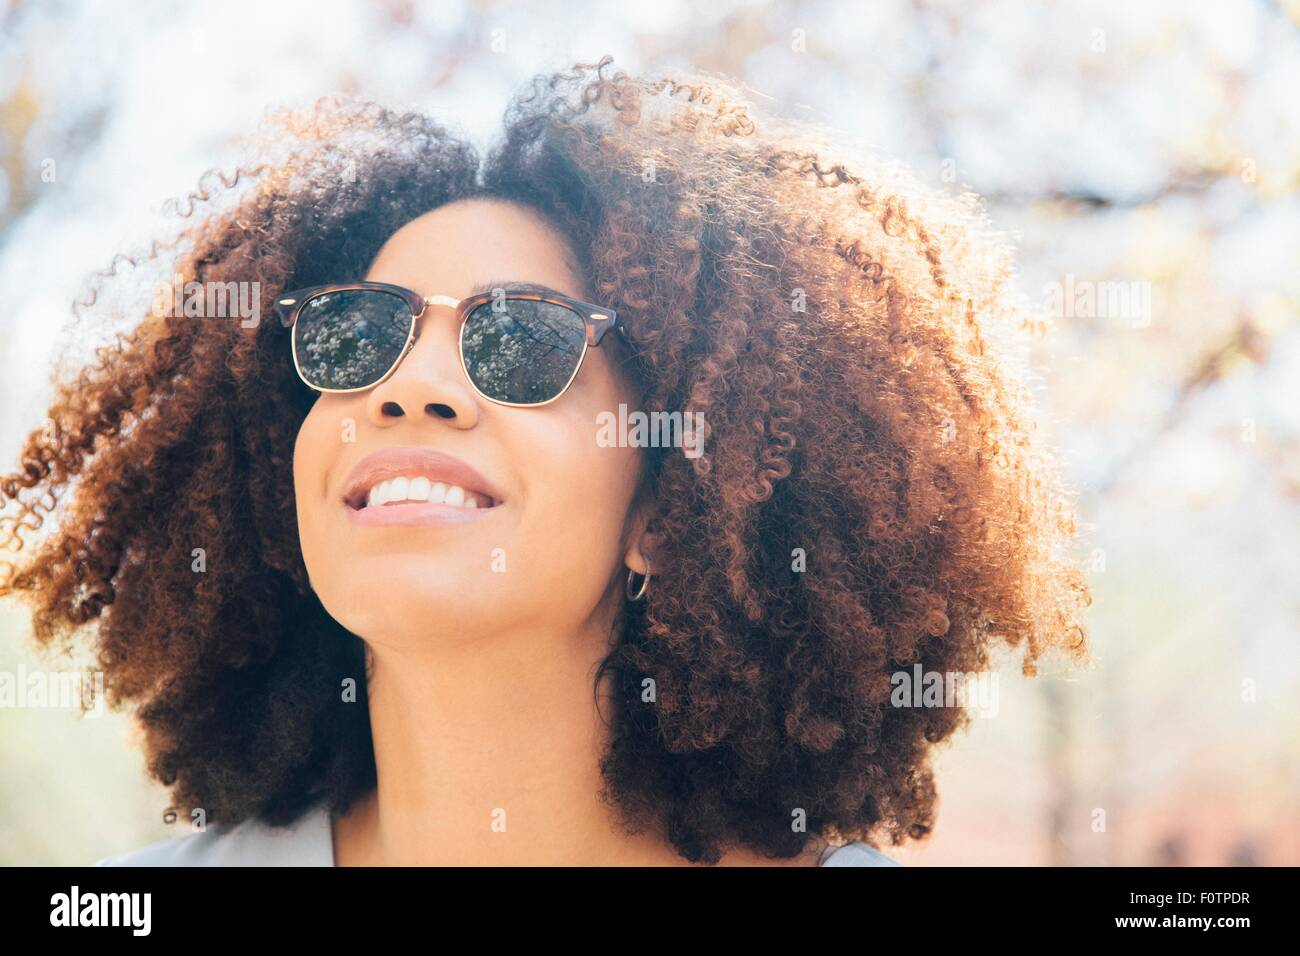 Close up portrait of mid adult woman, wearing sunglasses, smiling, looking away - Stock Image